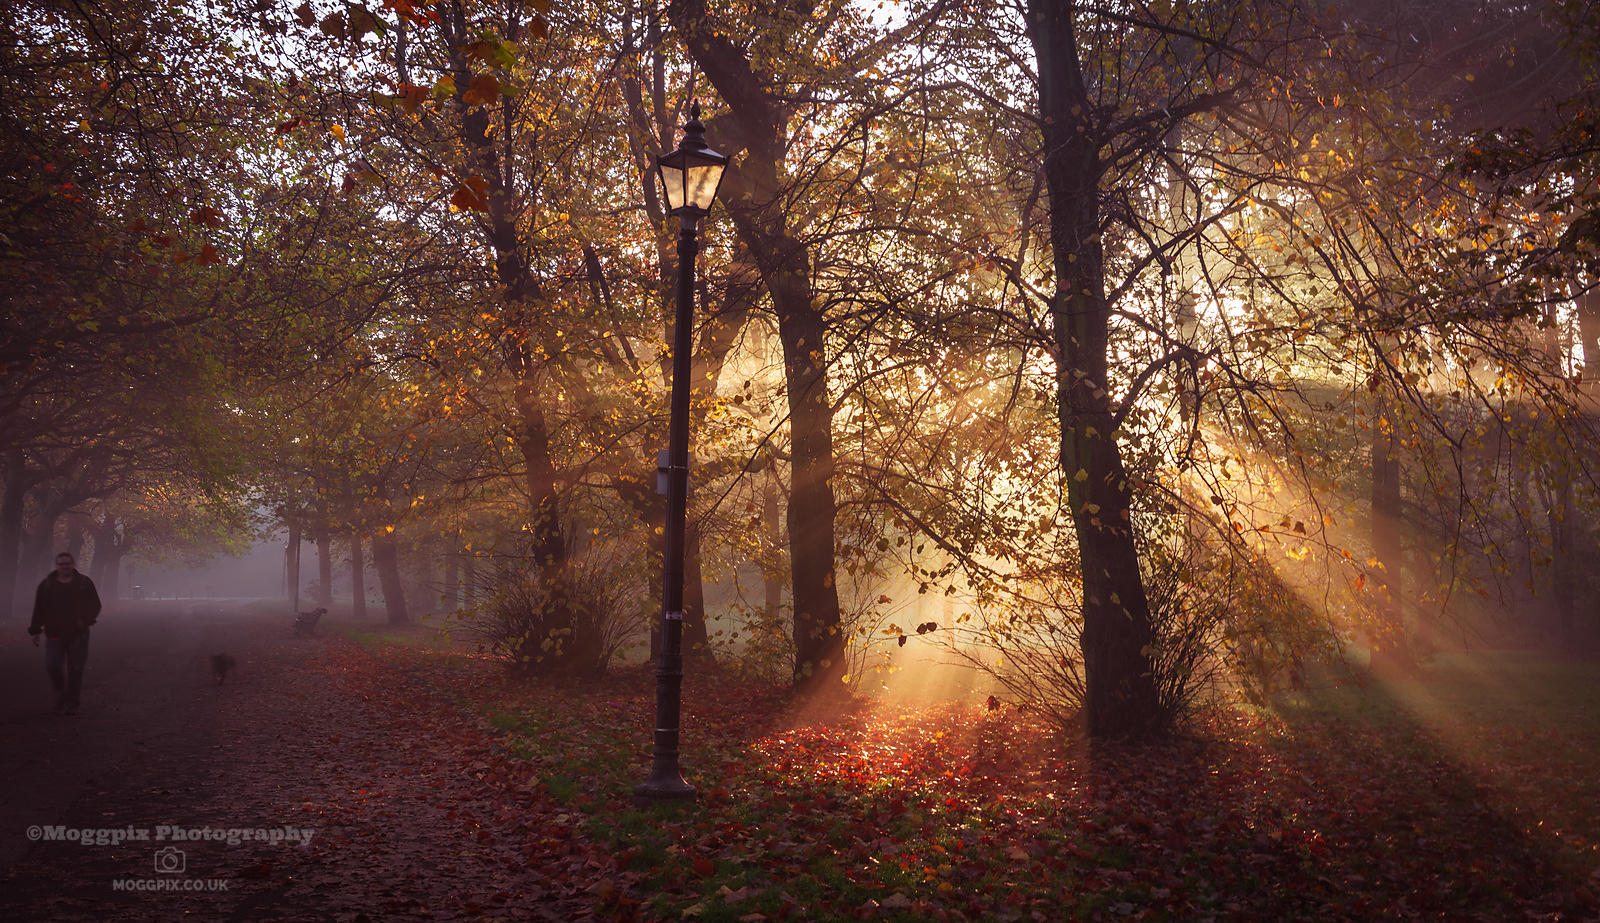 A Burst of Autumn Sunlight